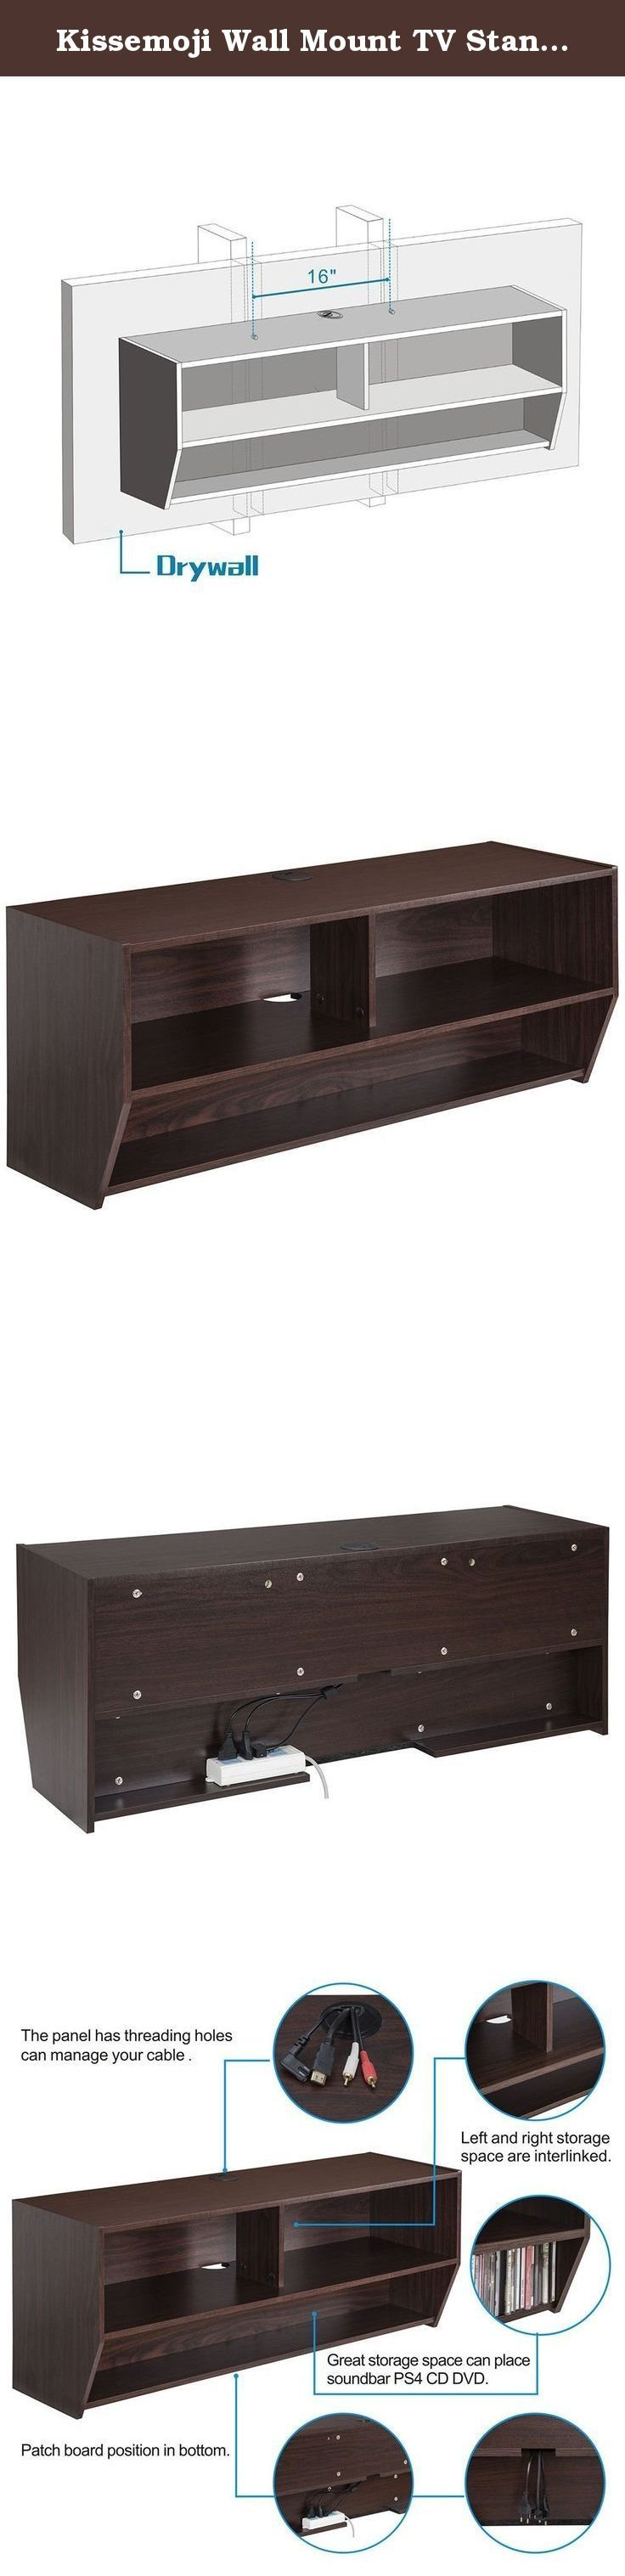 Kissemoji Wall Mount TV Stand Media Console Floating TV Shelf Shelves. Specification: Modern, space-saving design Supports a maximum of 55/33/22lbs for shelf Walnut grain and brown MDF covered Cables neatly concealed for professional quality installation The shelf below can place sound bar, xbox one, PS4 DVD, VCD,Blu-Ray Discs/CDs or DVD's The lower shelf can place wiring board to hide the messy cable Don't be hung on metal wall or slat wall Product…